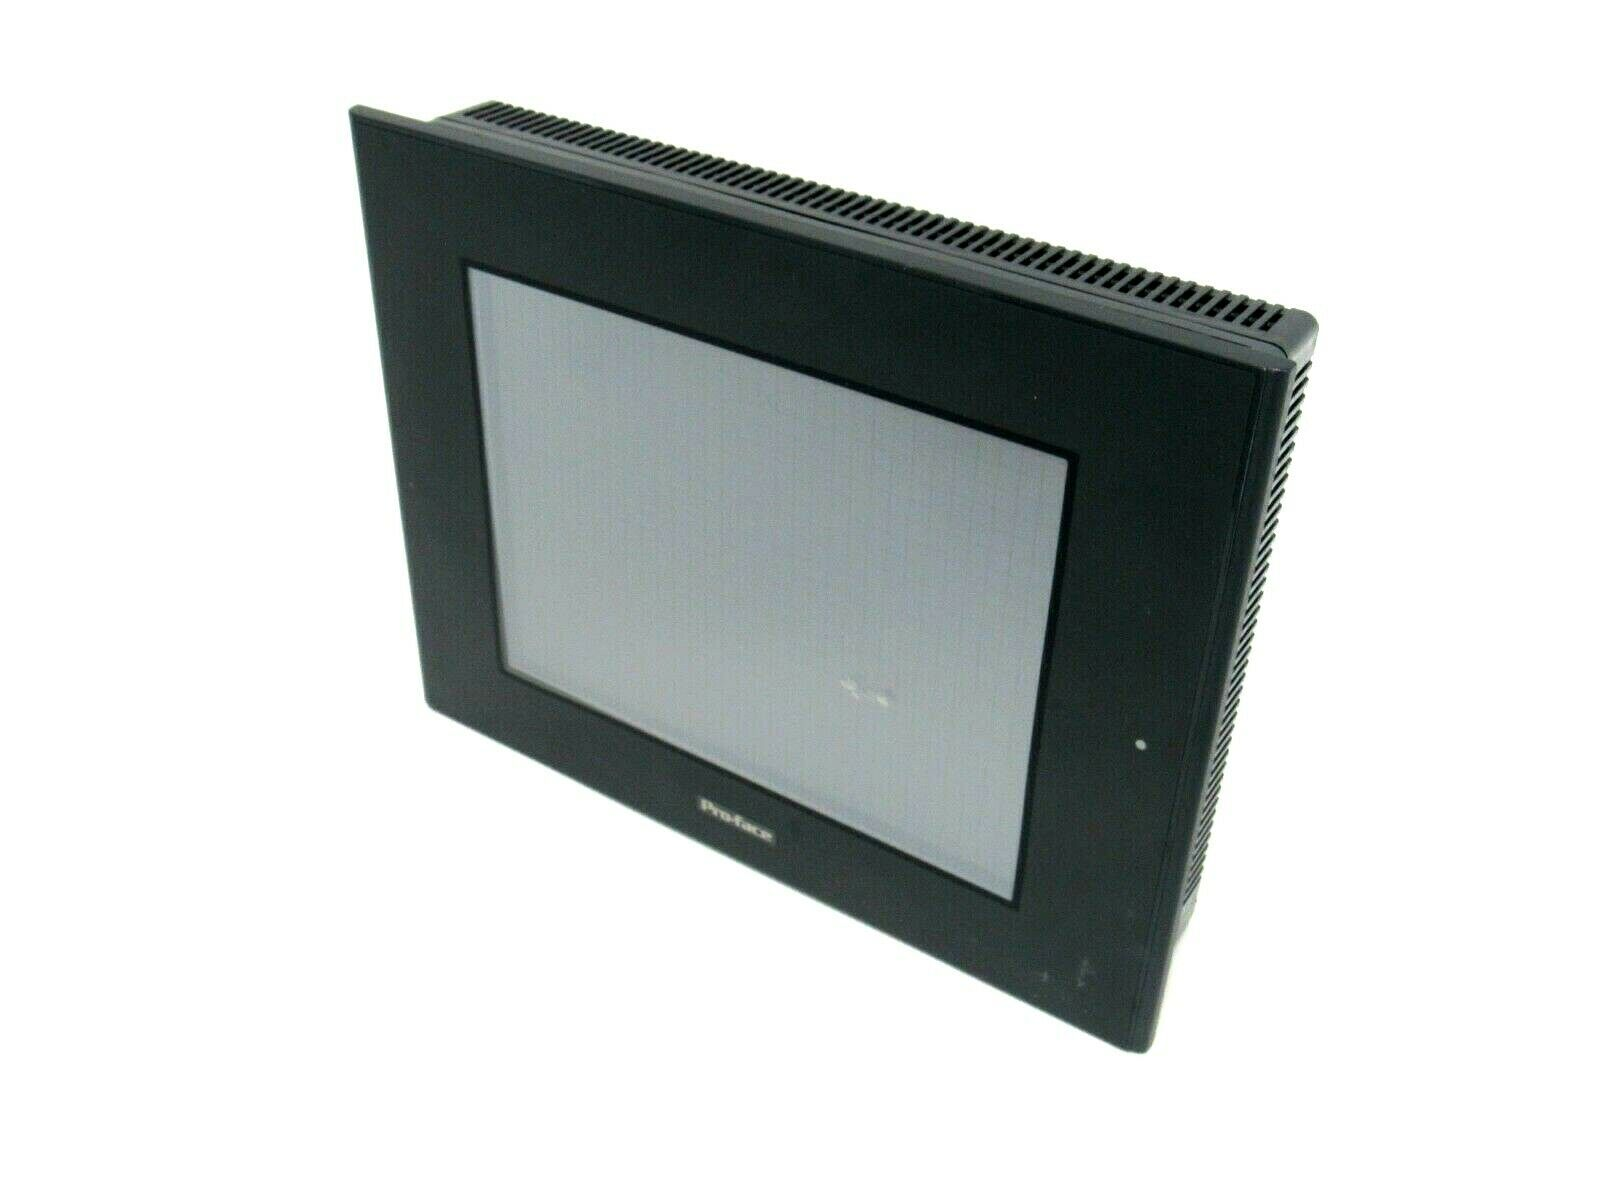 Touch screen for Pro-face 2980078-02 GP2500-SC41-24V with Protective film